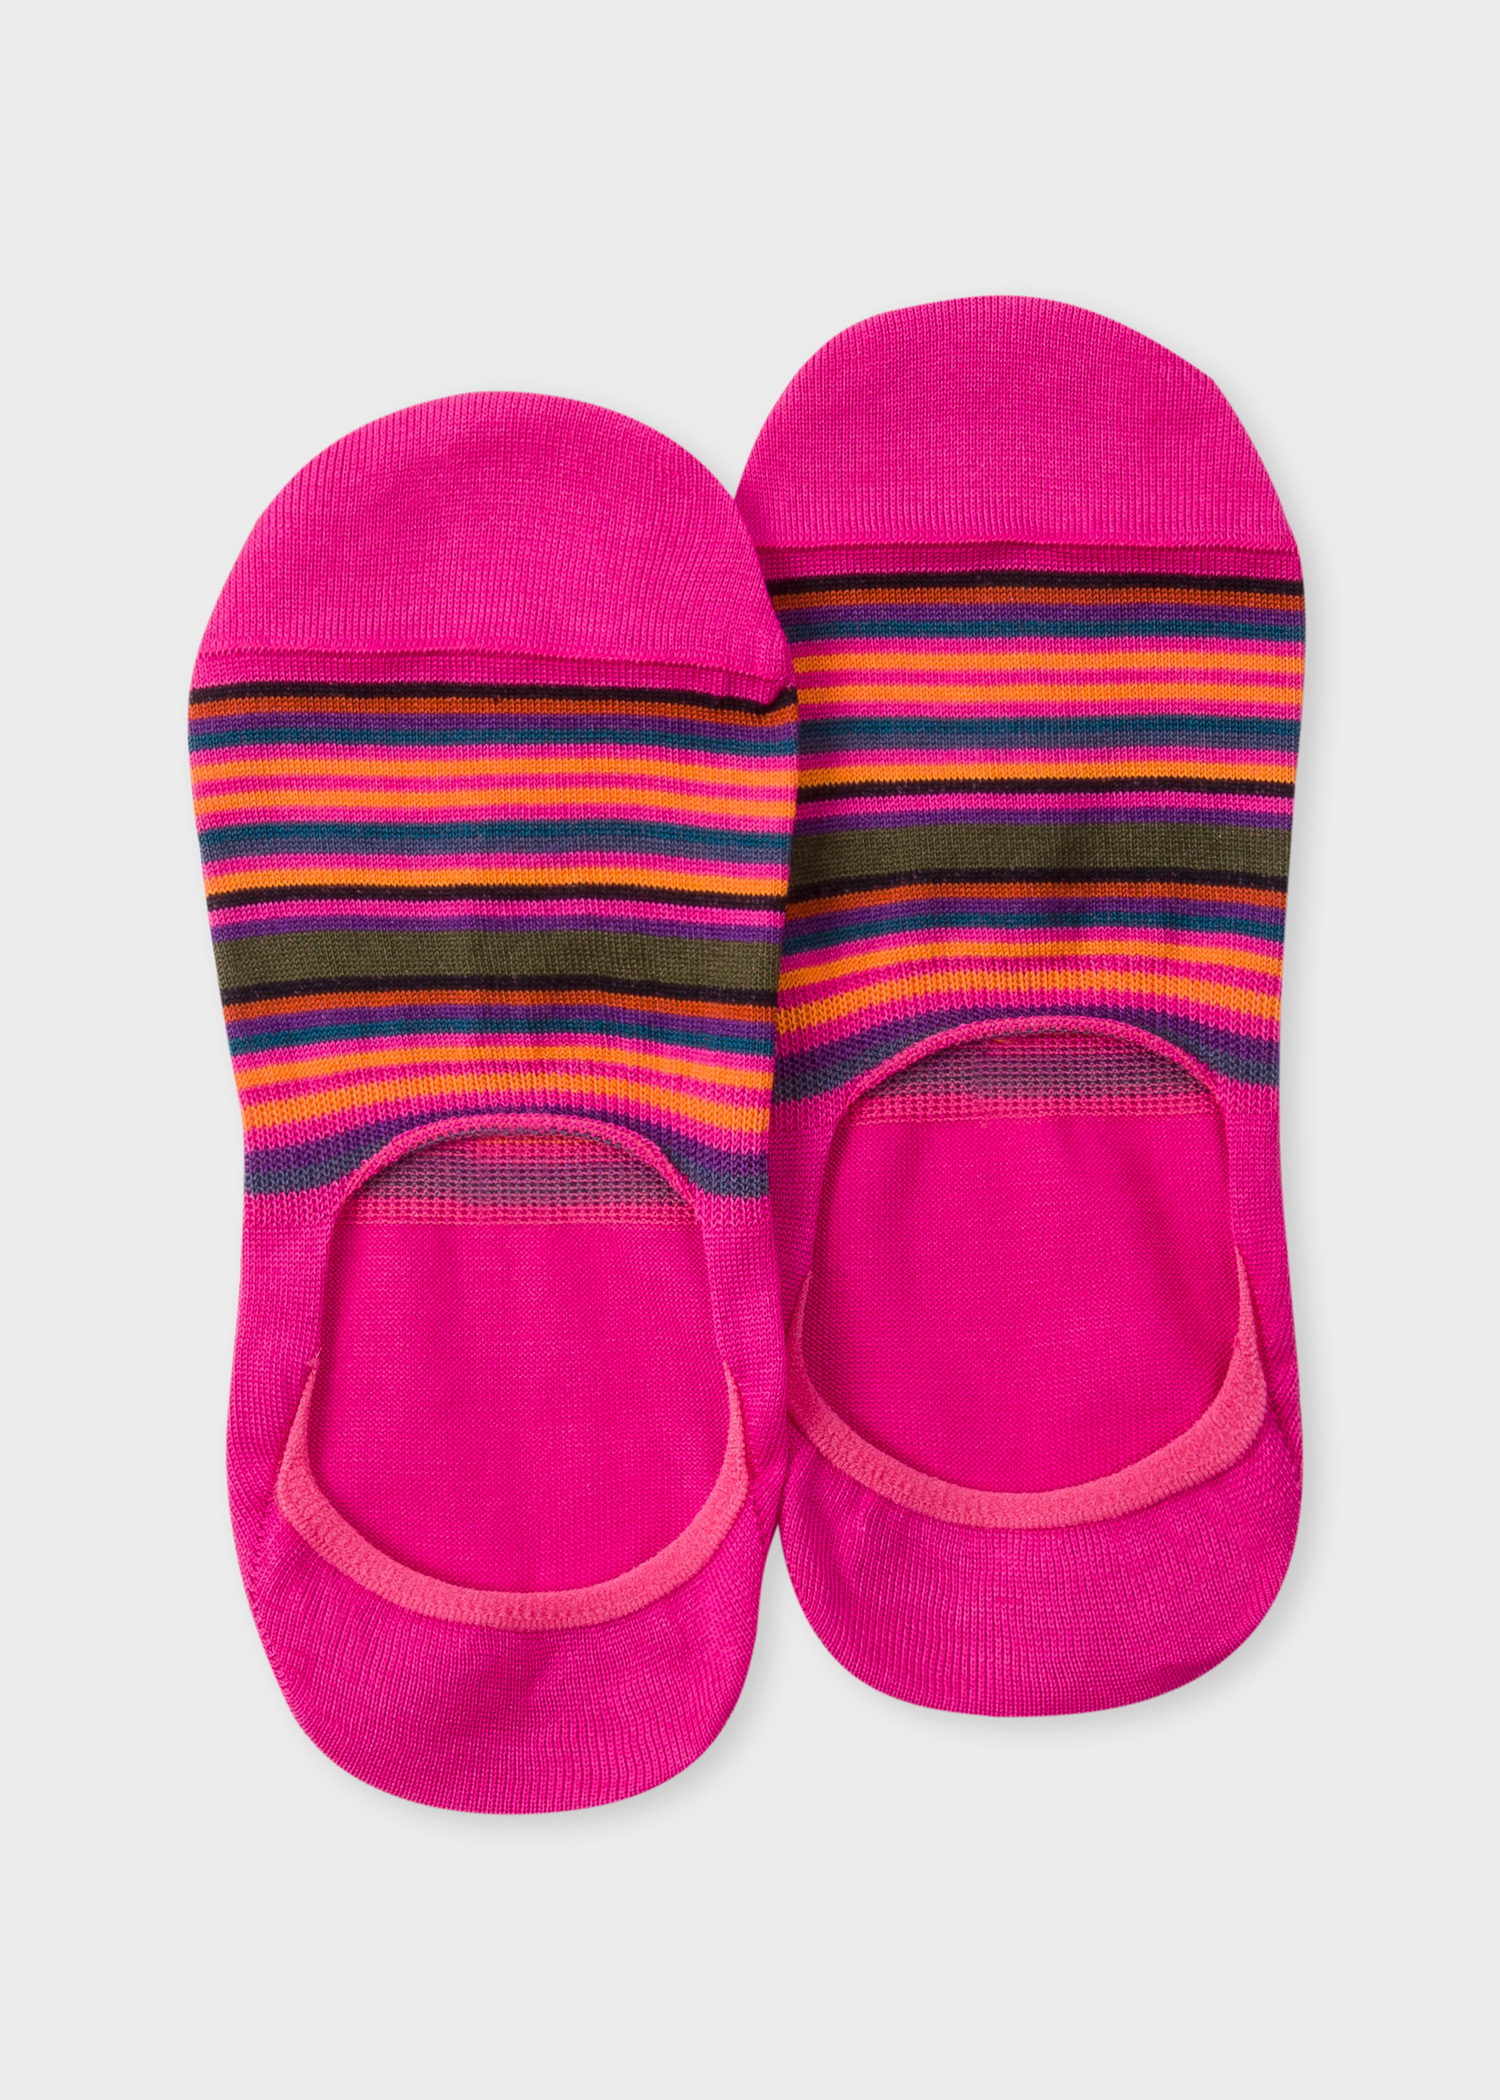 39d9e3622be Front view - Women s Fuchsia Multi-Colour Striped Loafer Socks Paul Smith